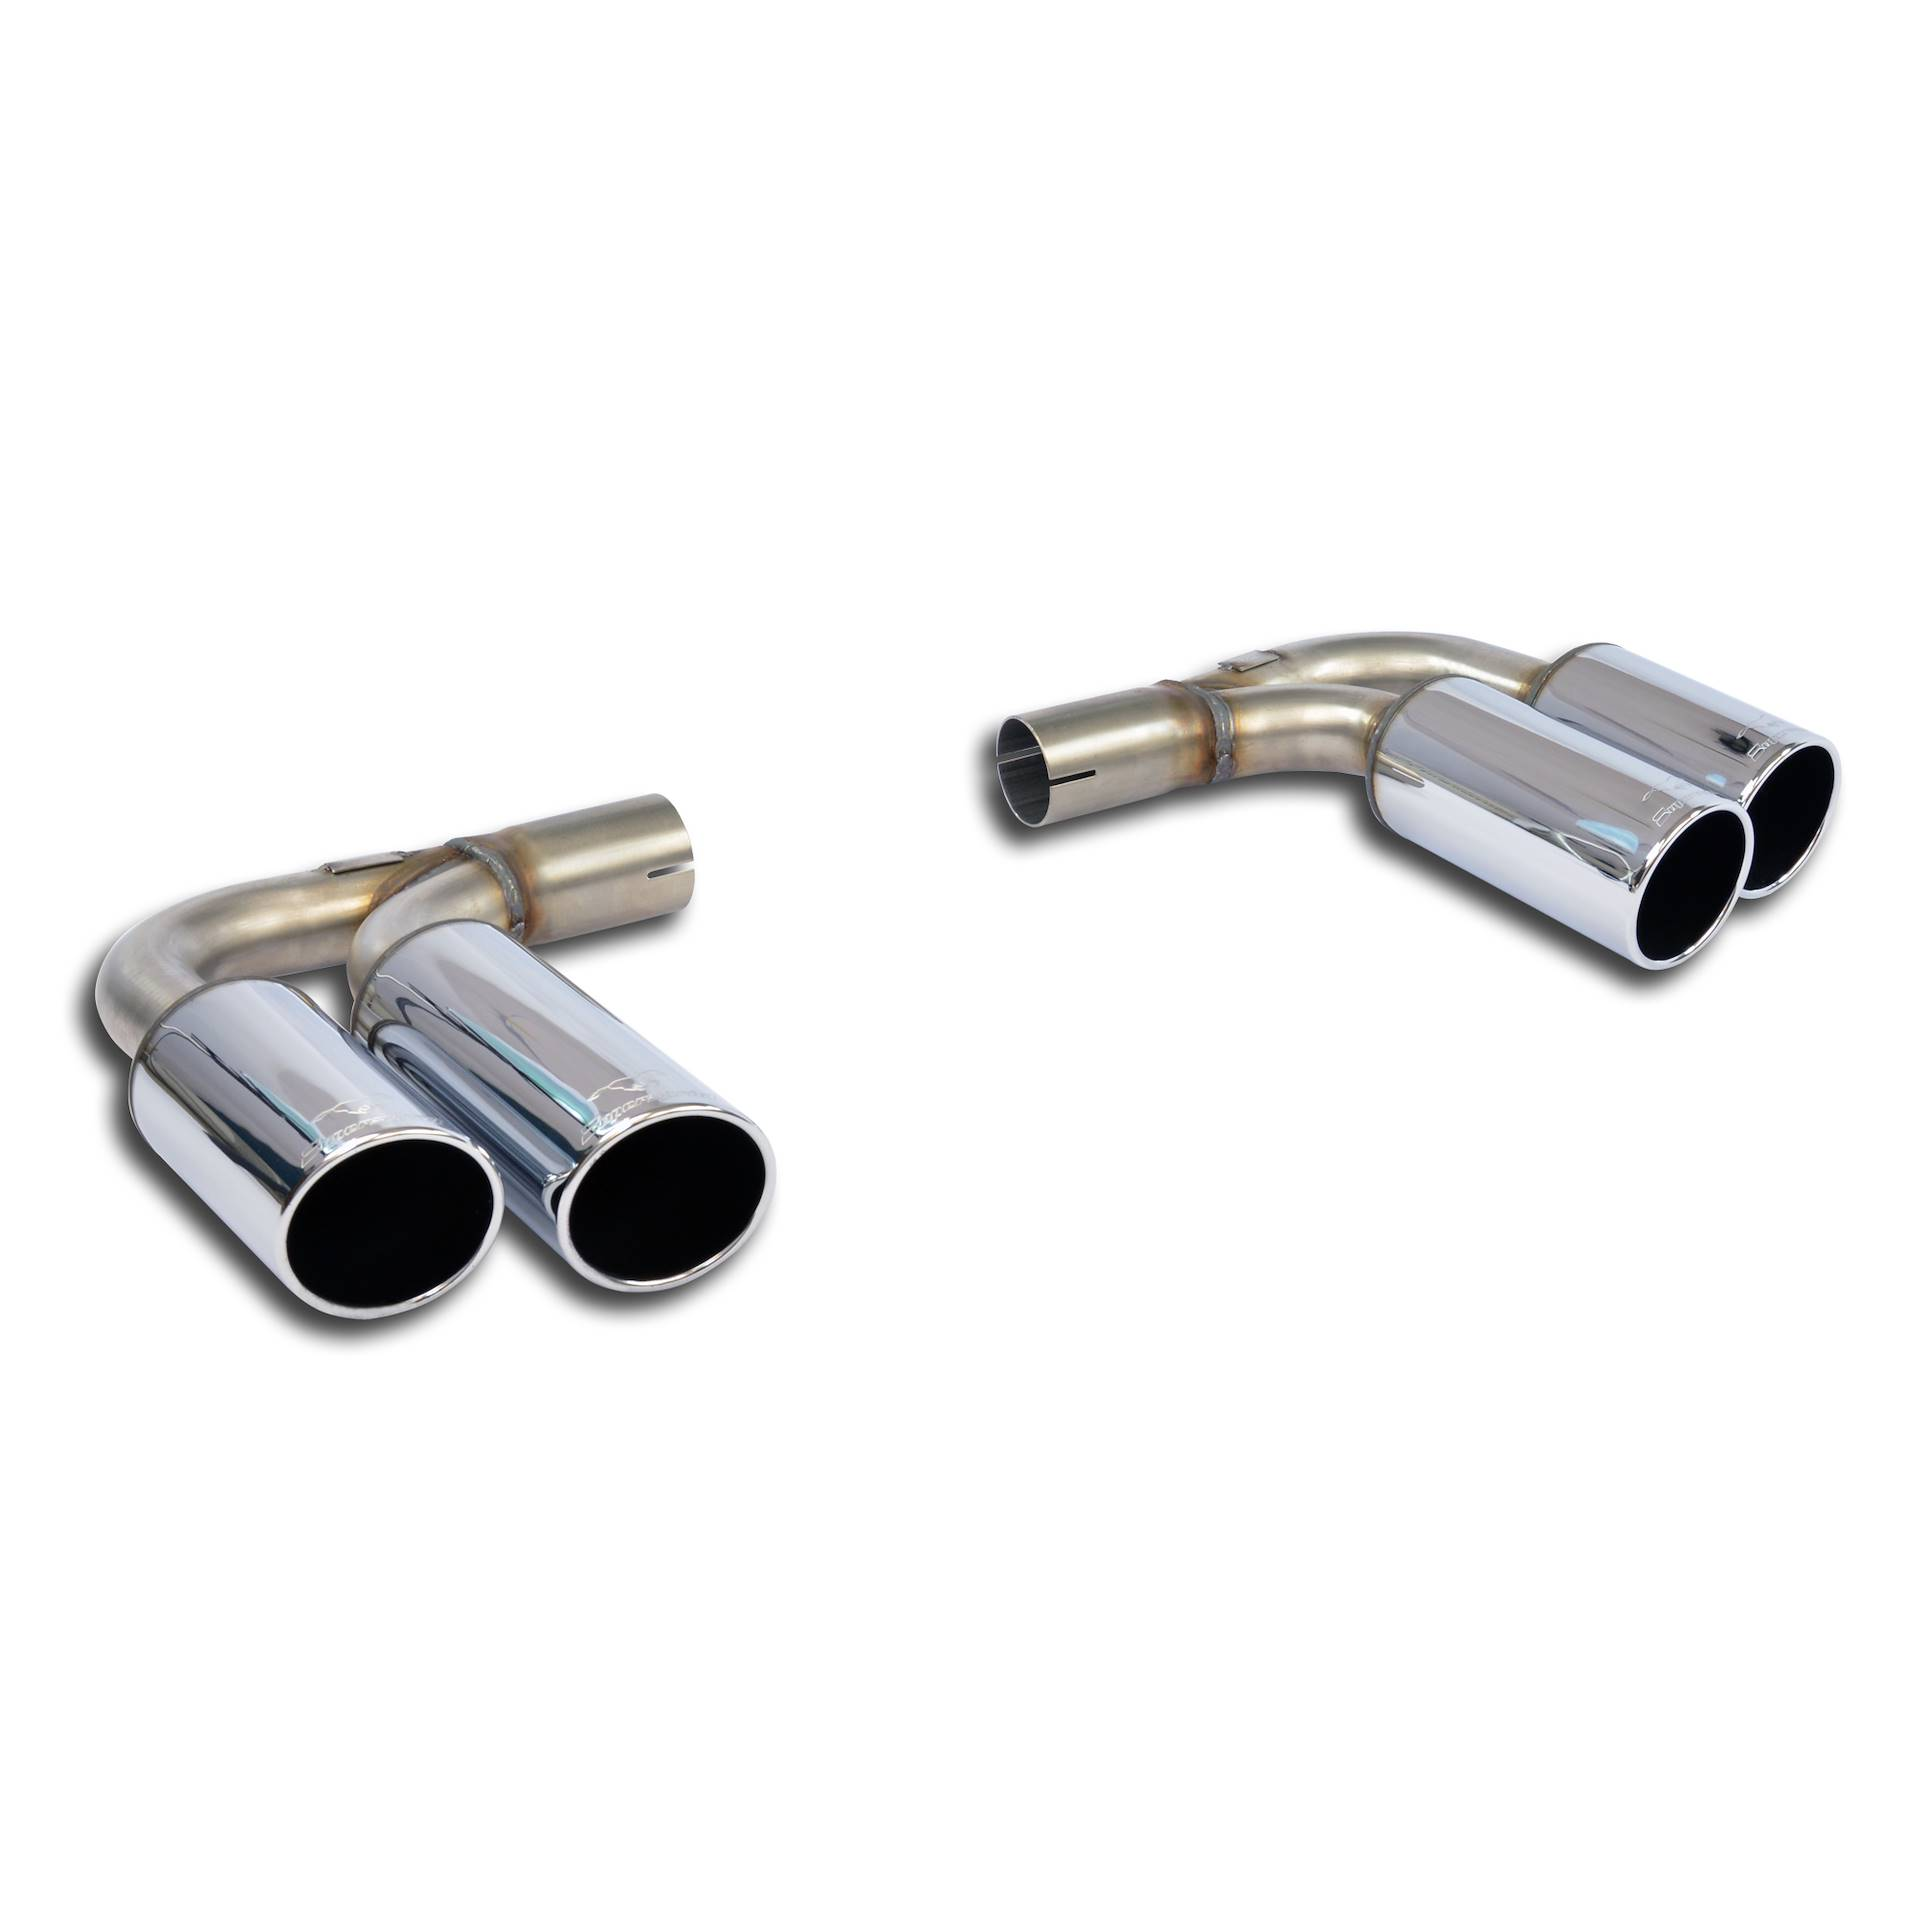 Audi - AUDI TT Mk2 Coupè/Roadster 2.0 TFSi (200Hp/211Hp)'07->'14 (Racing Ø70mm) Endpipe kit Right + Left 4 exit OO80, performance exhaust systems